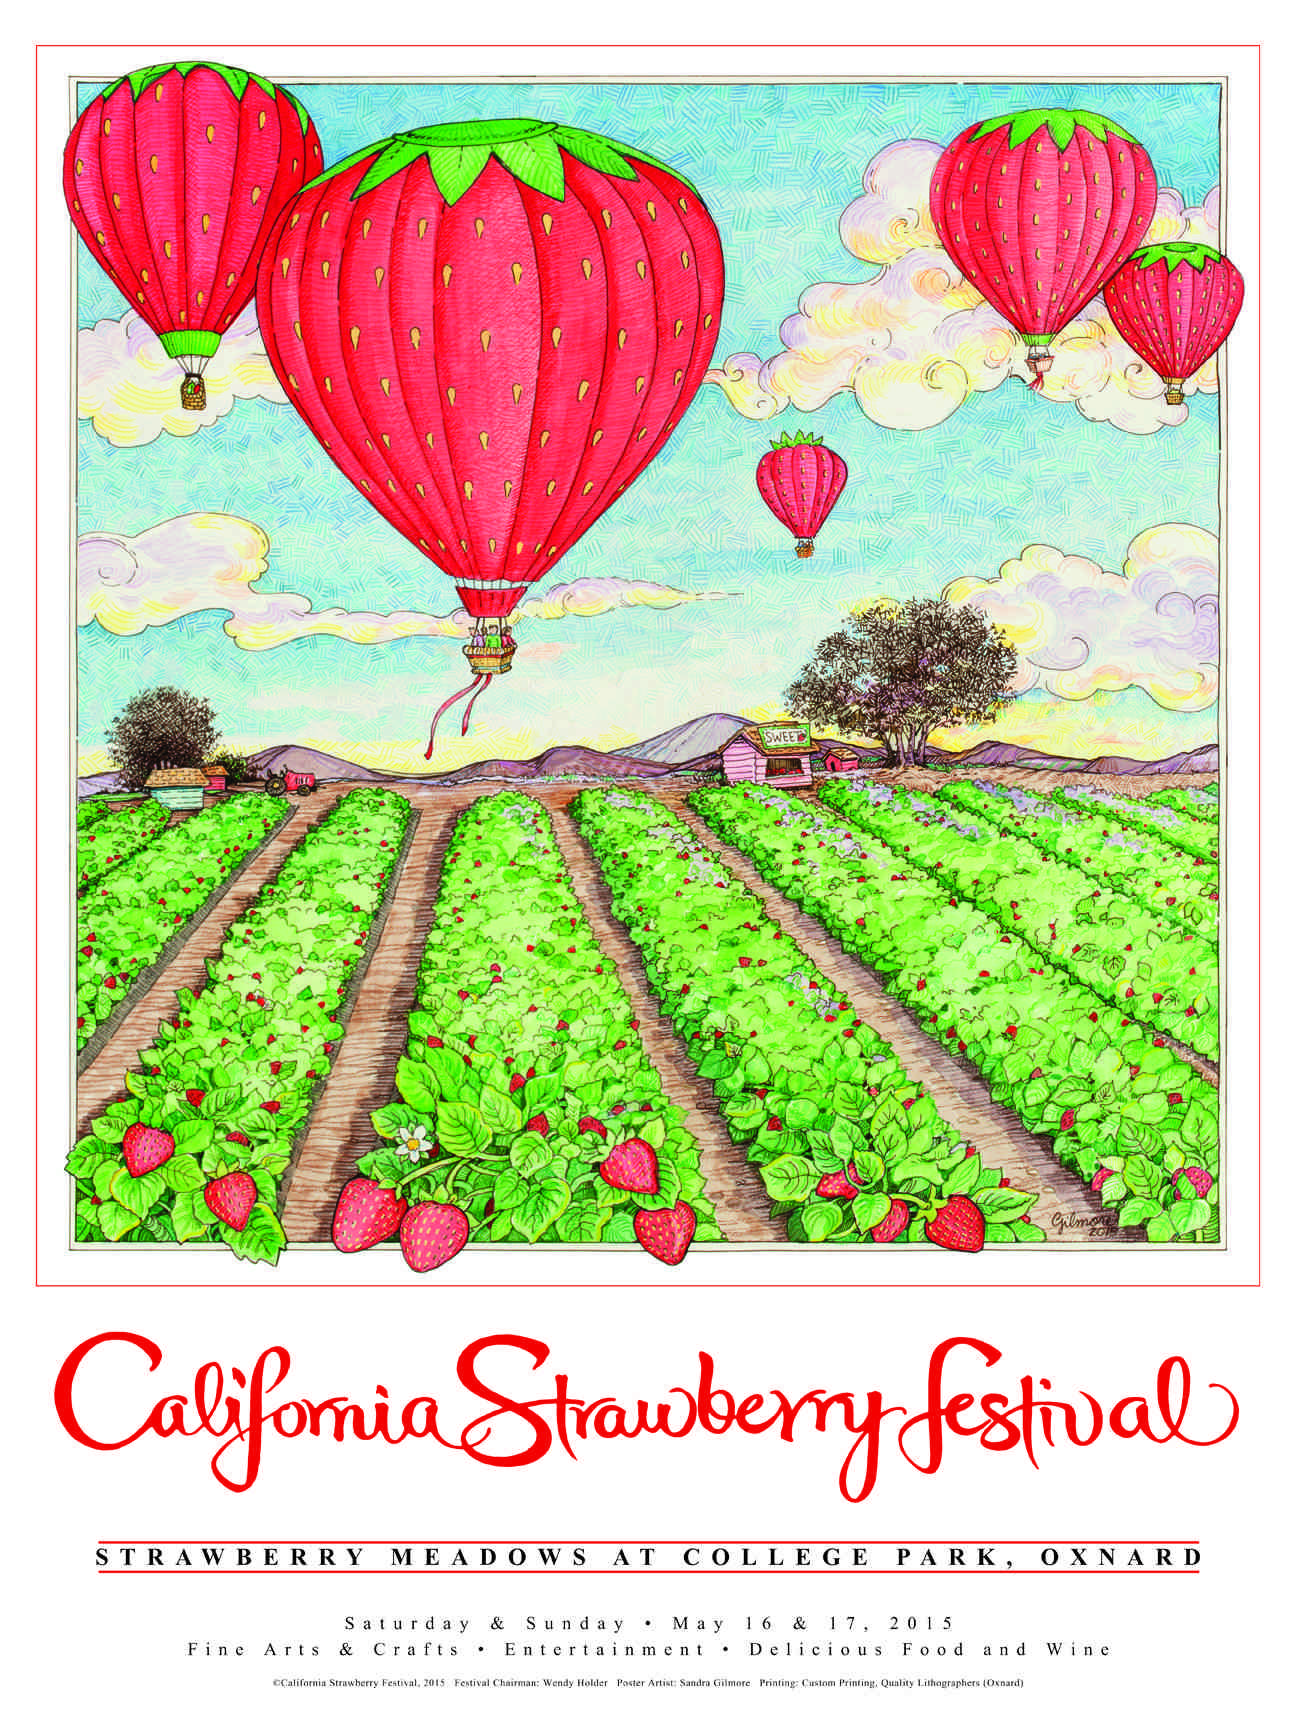 4 h poster designs - Famed Needlepoint Illustrator Sandra Gilmore S High Flying Original Strawberry Design On The 2015 Official California Strawberry Festival Poster